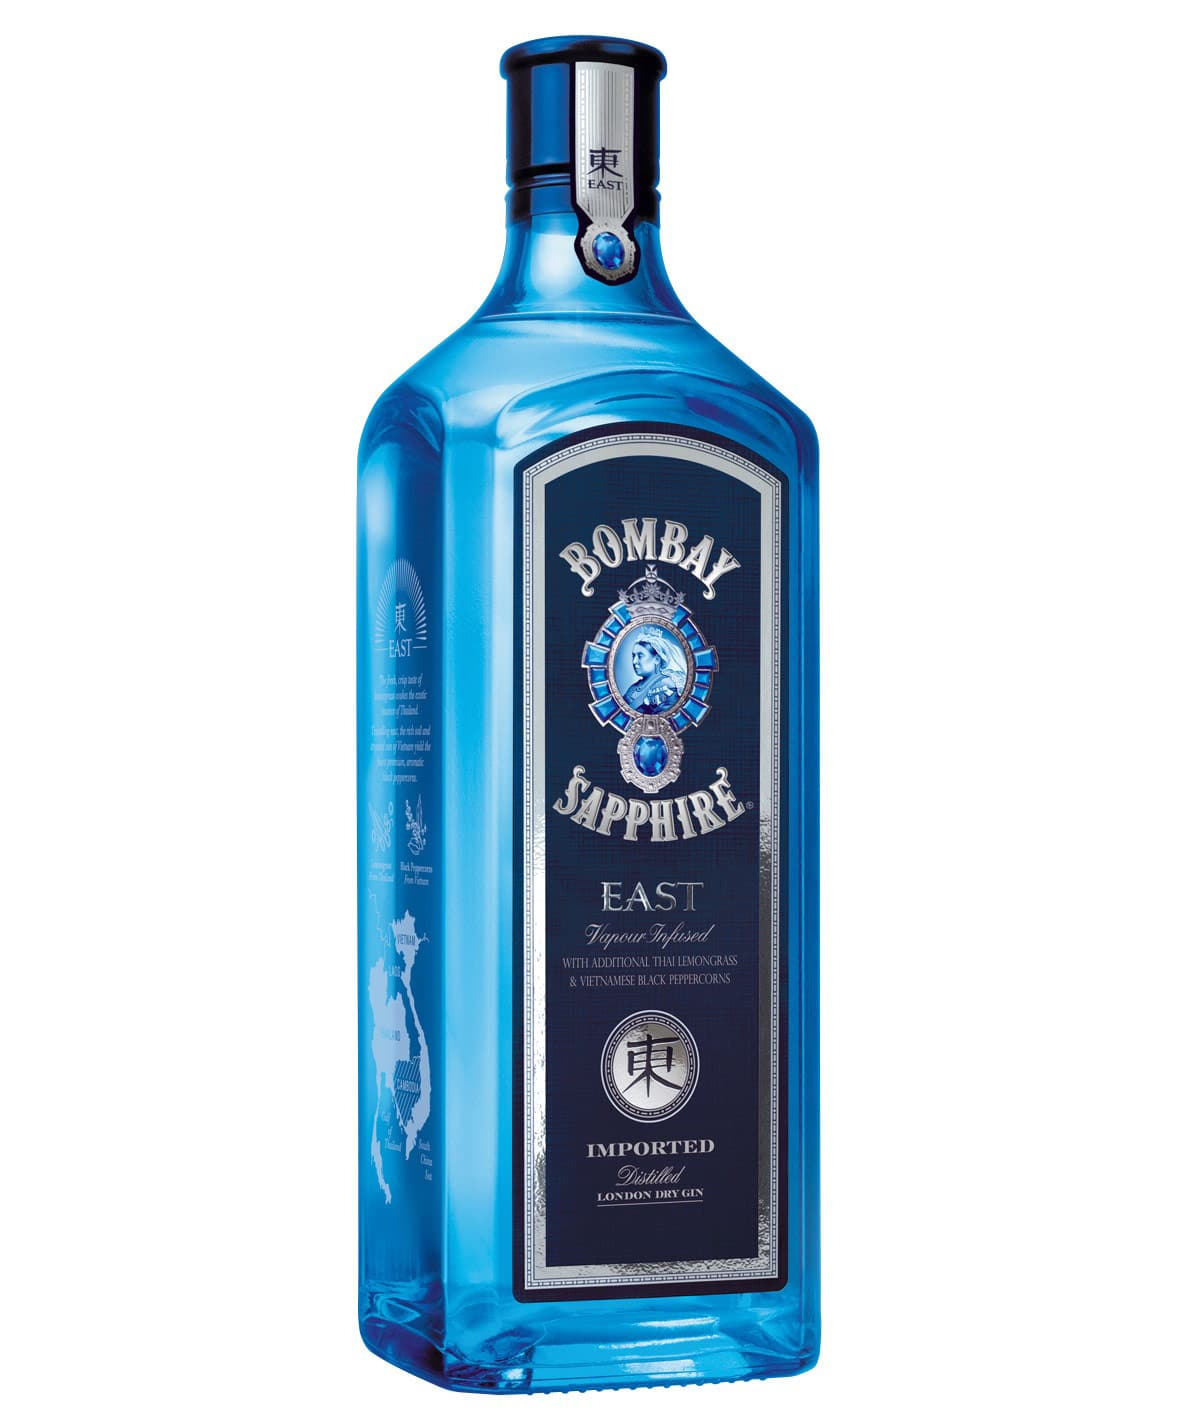 Ay Sapphire East Review And Rating The Gin Is In